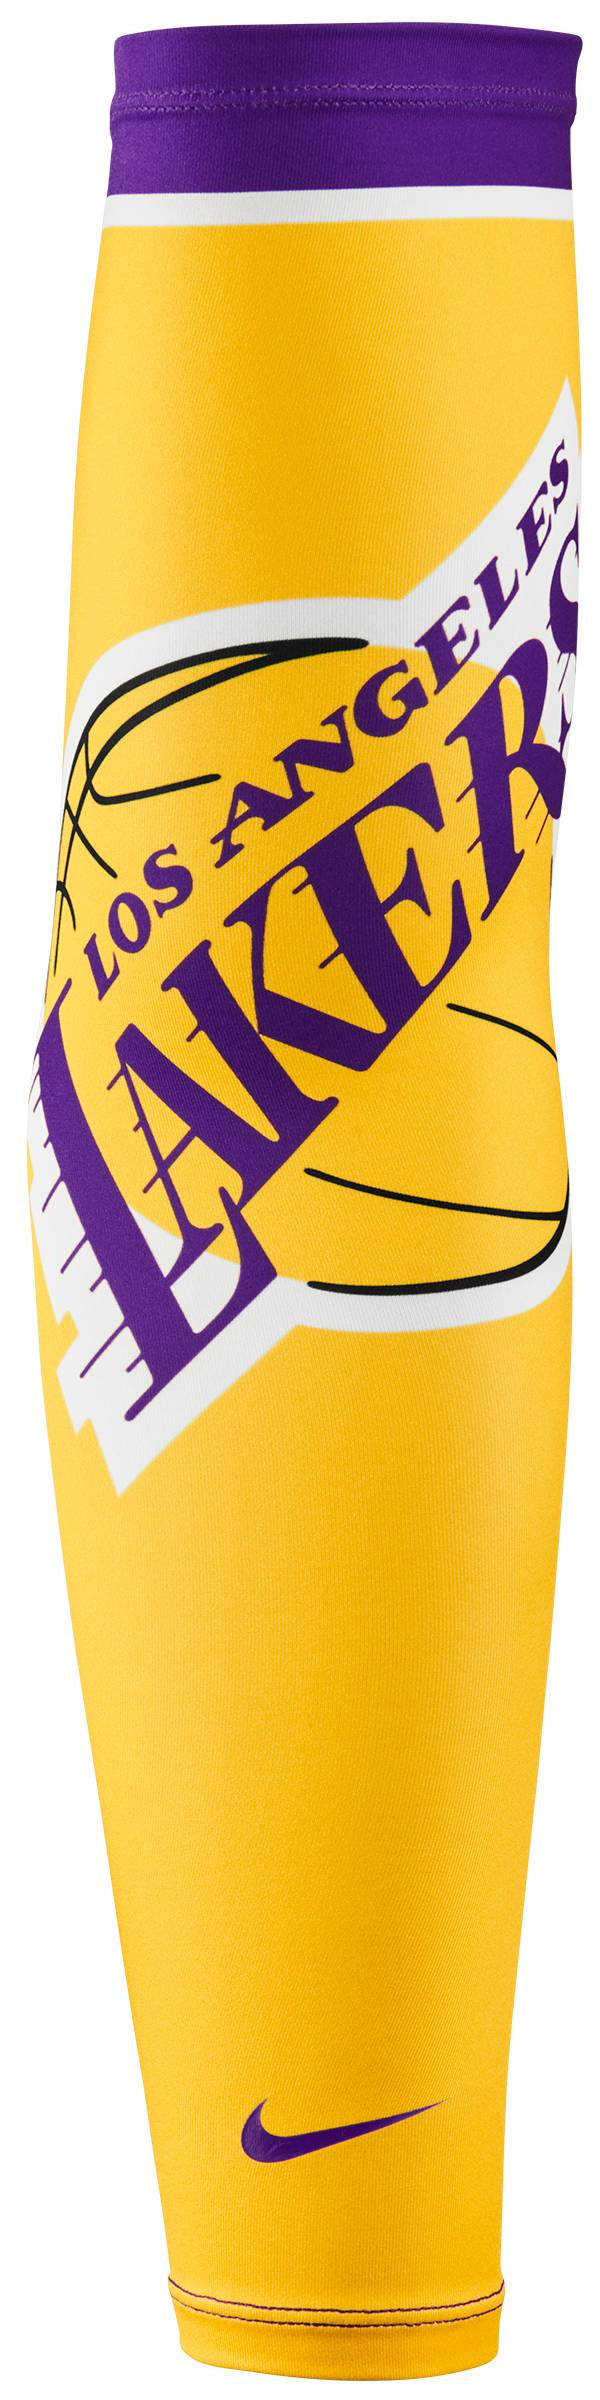 Nike Los Angeles Lakers Shooter Arm Sleeve product image